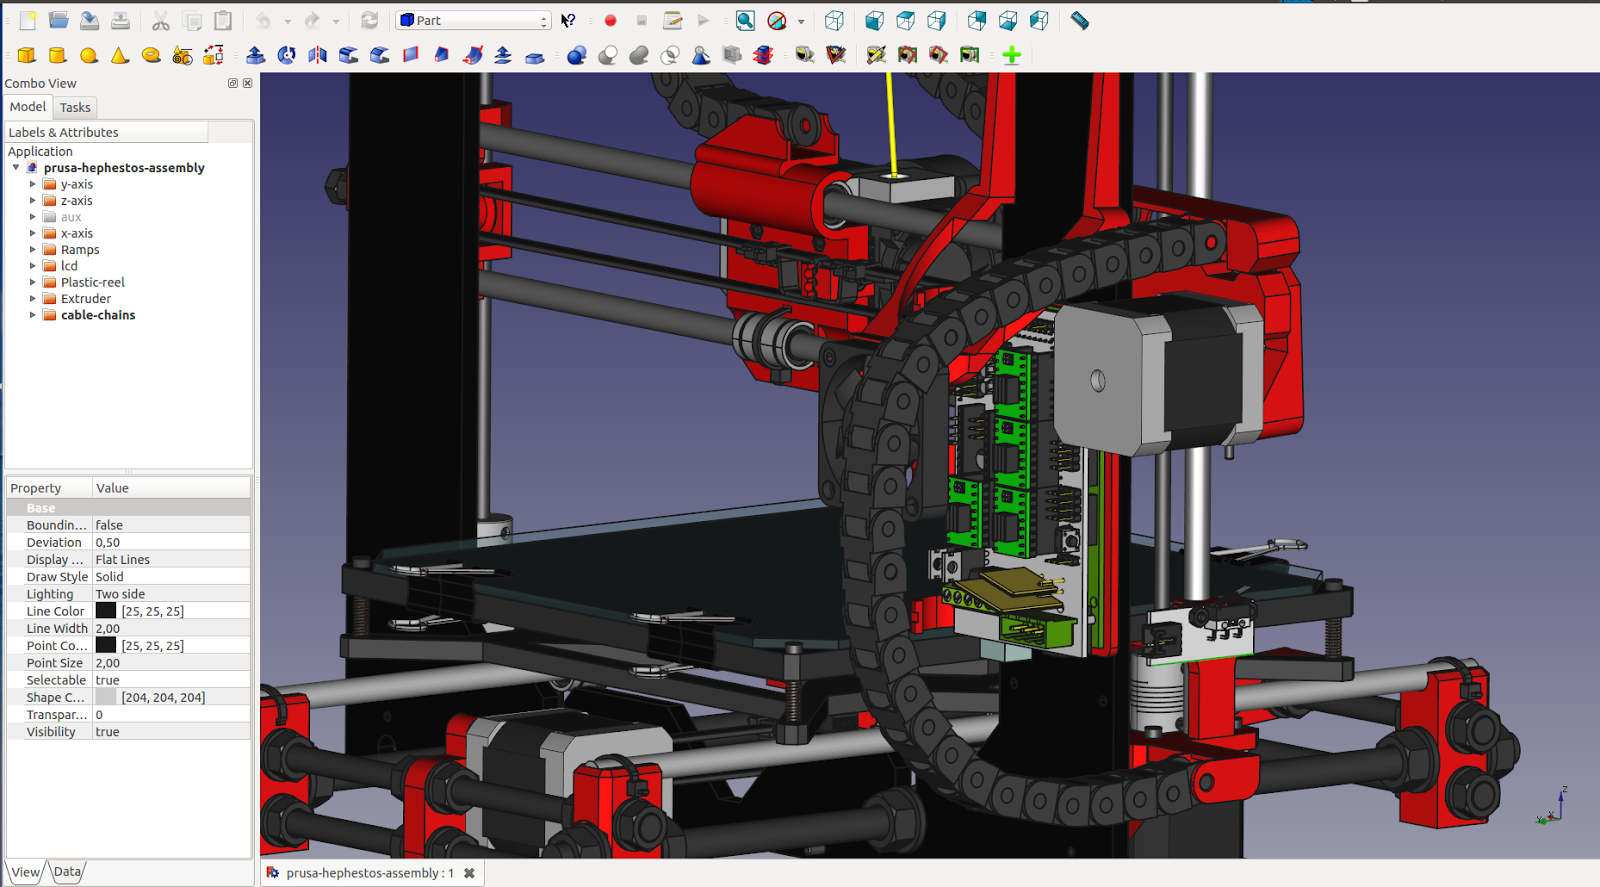 Hobart 3D CAD under Linux - FreeCAD